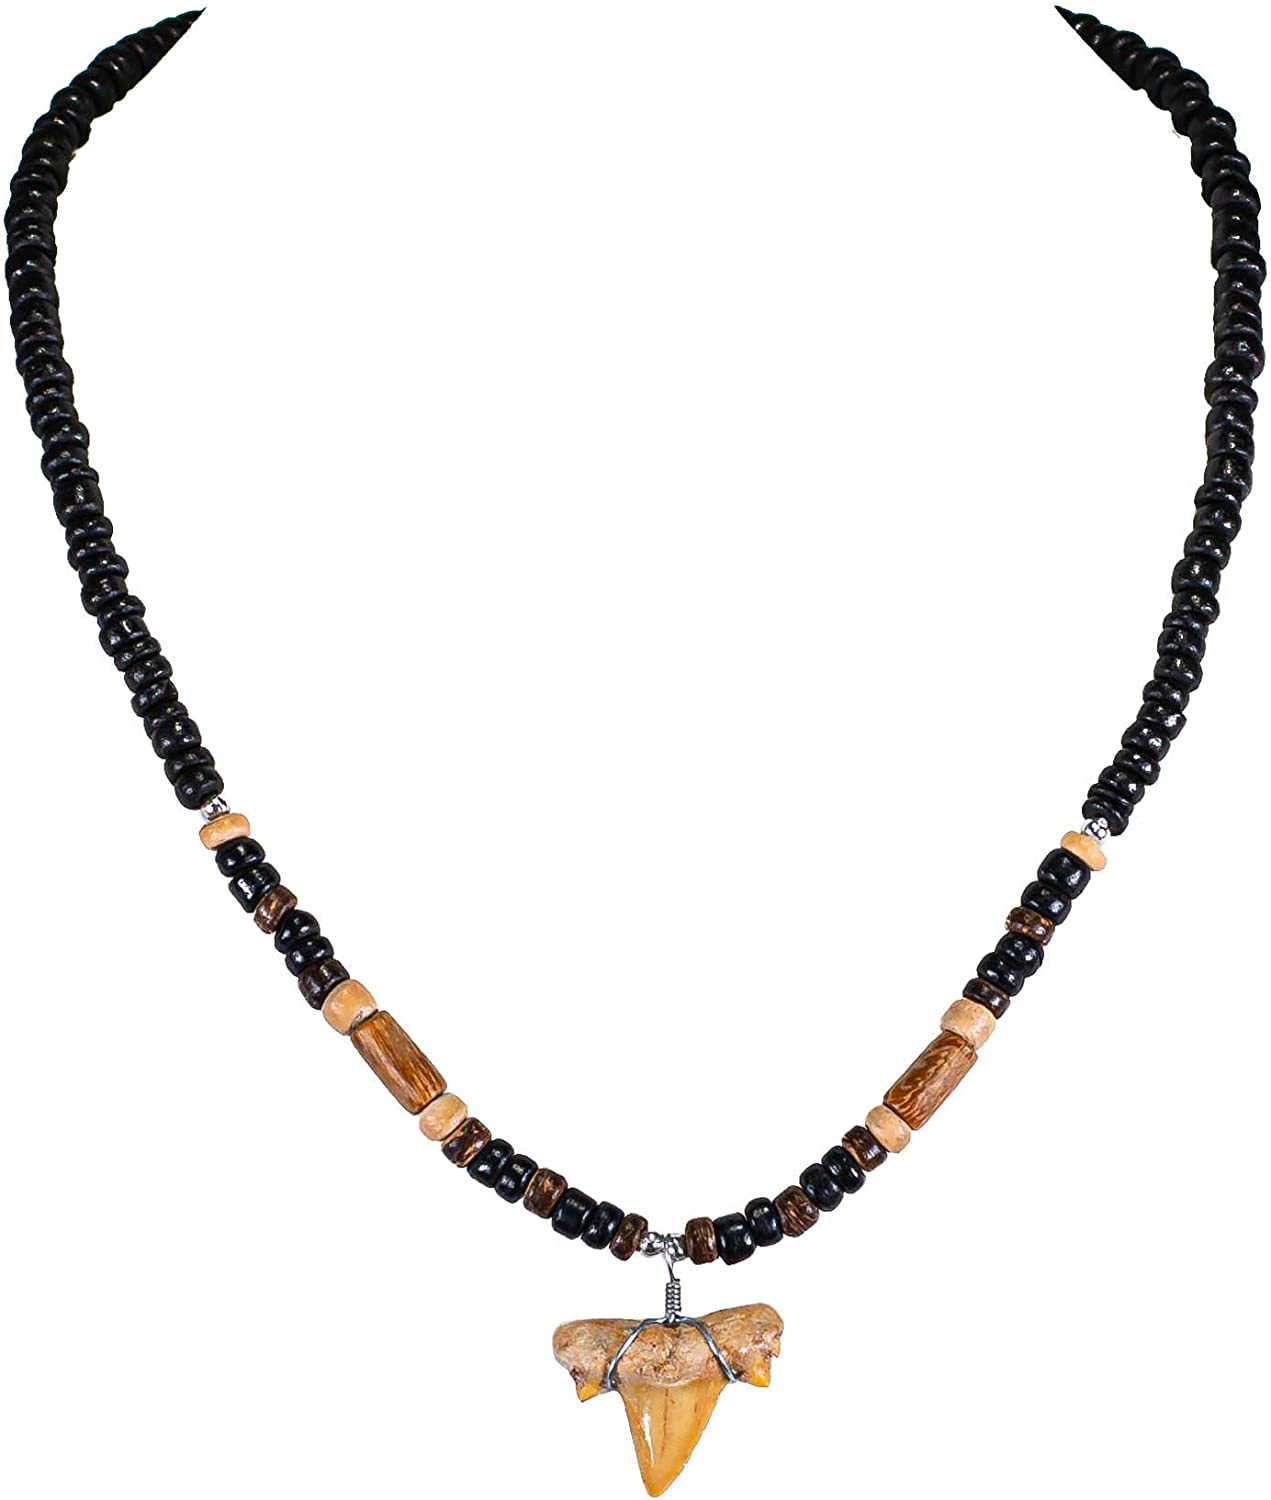 BlueRica Shark Tooth Pendant on Wood Beads Necklace (2S)